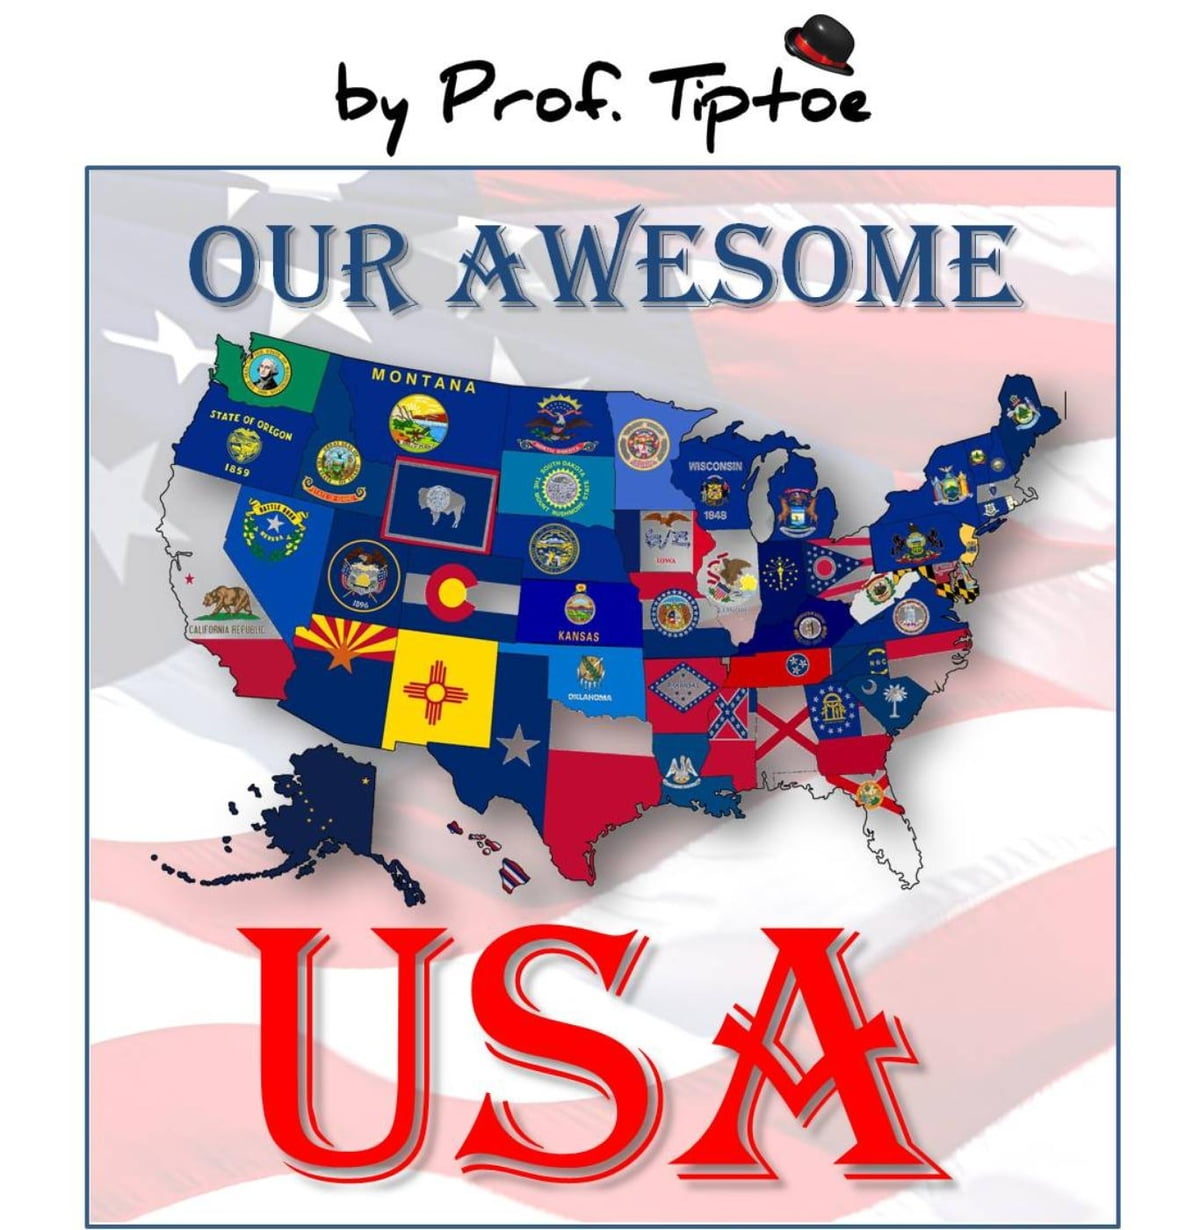 My awsome usa ebook by prof tiptoe 9781497751064 rakuten kobo fandeluxe Epub